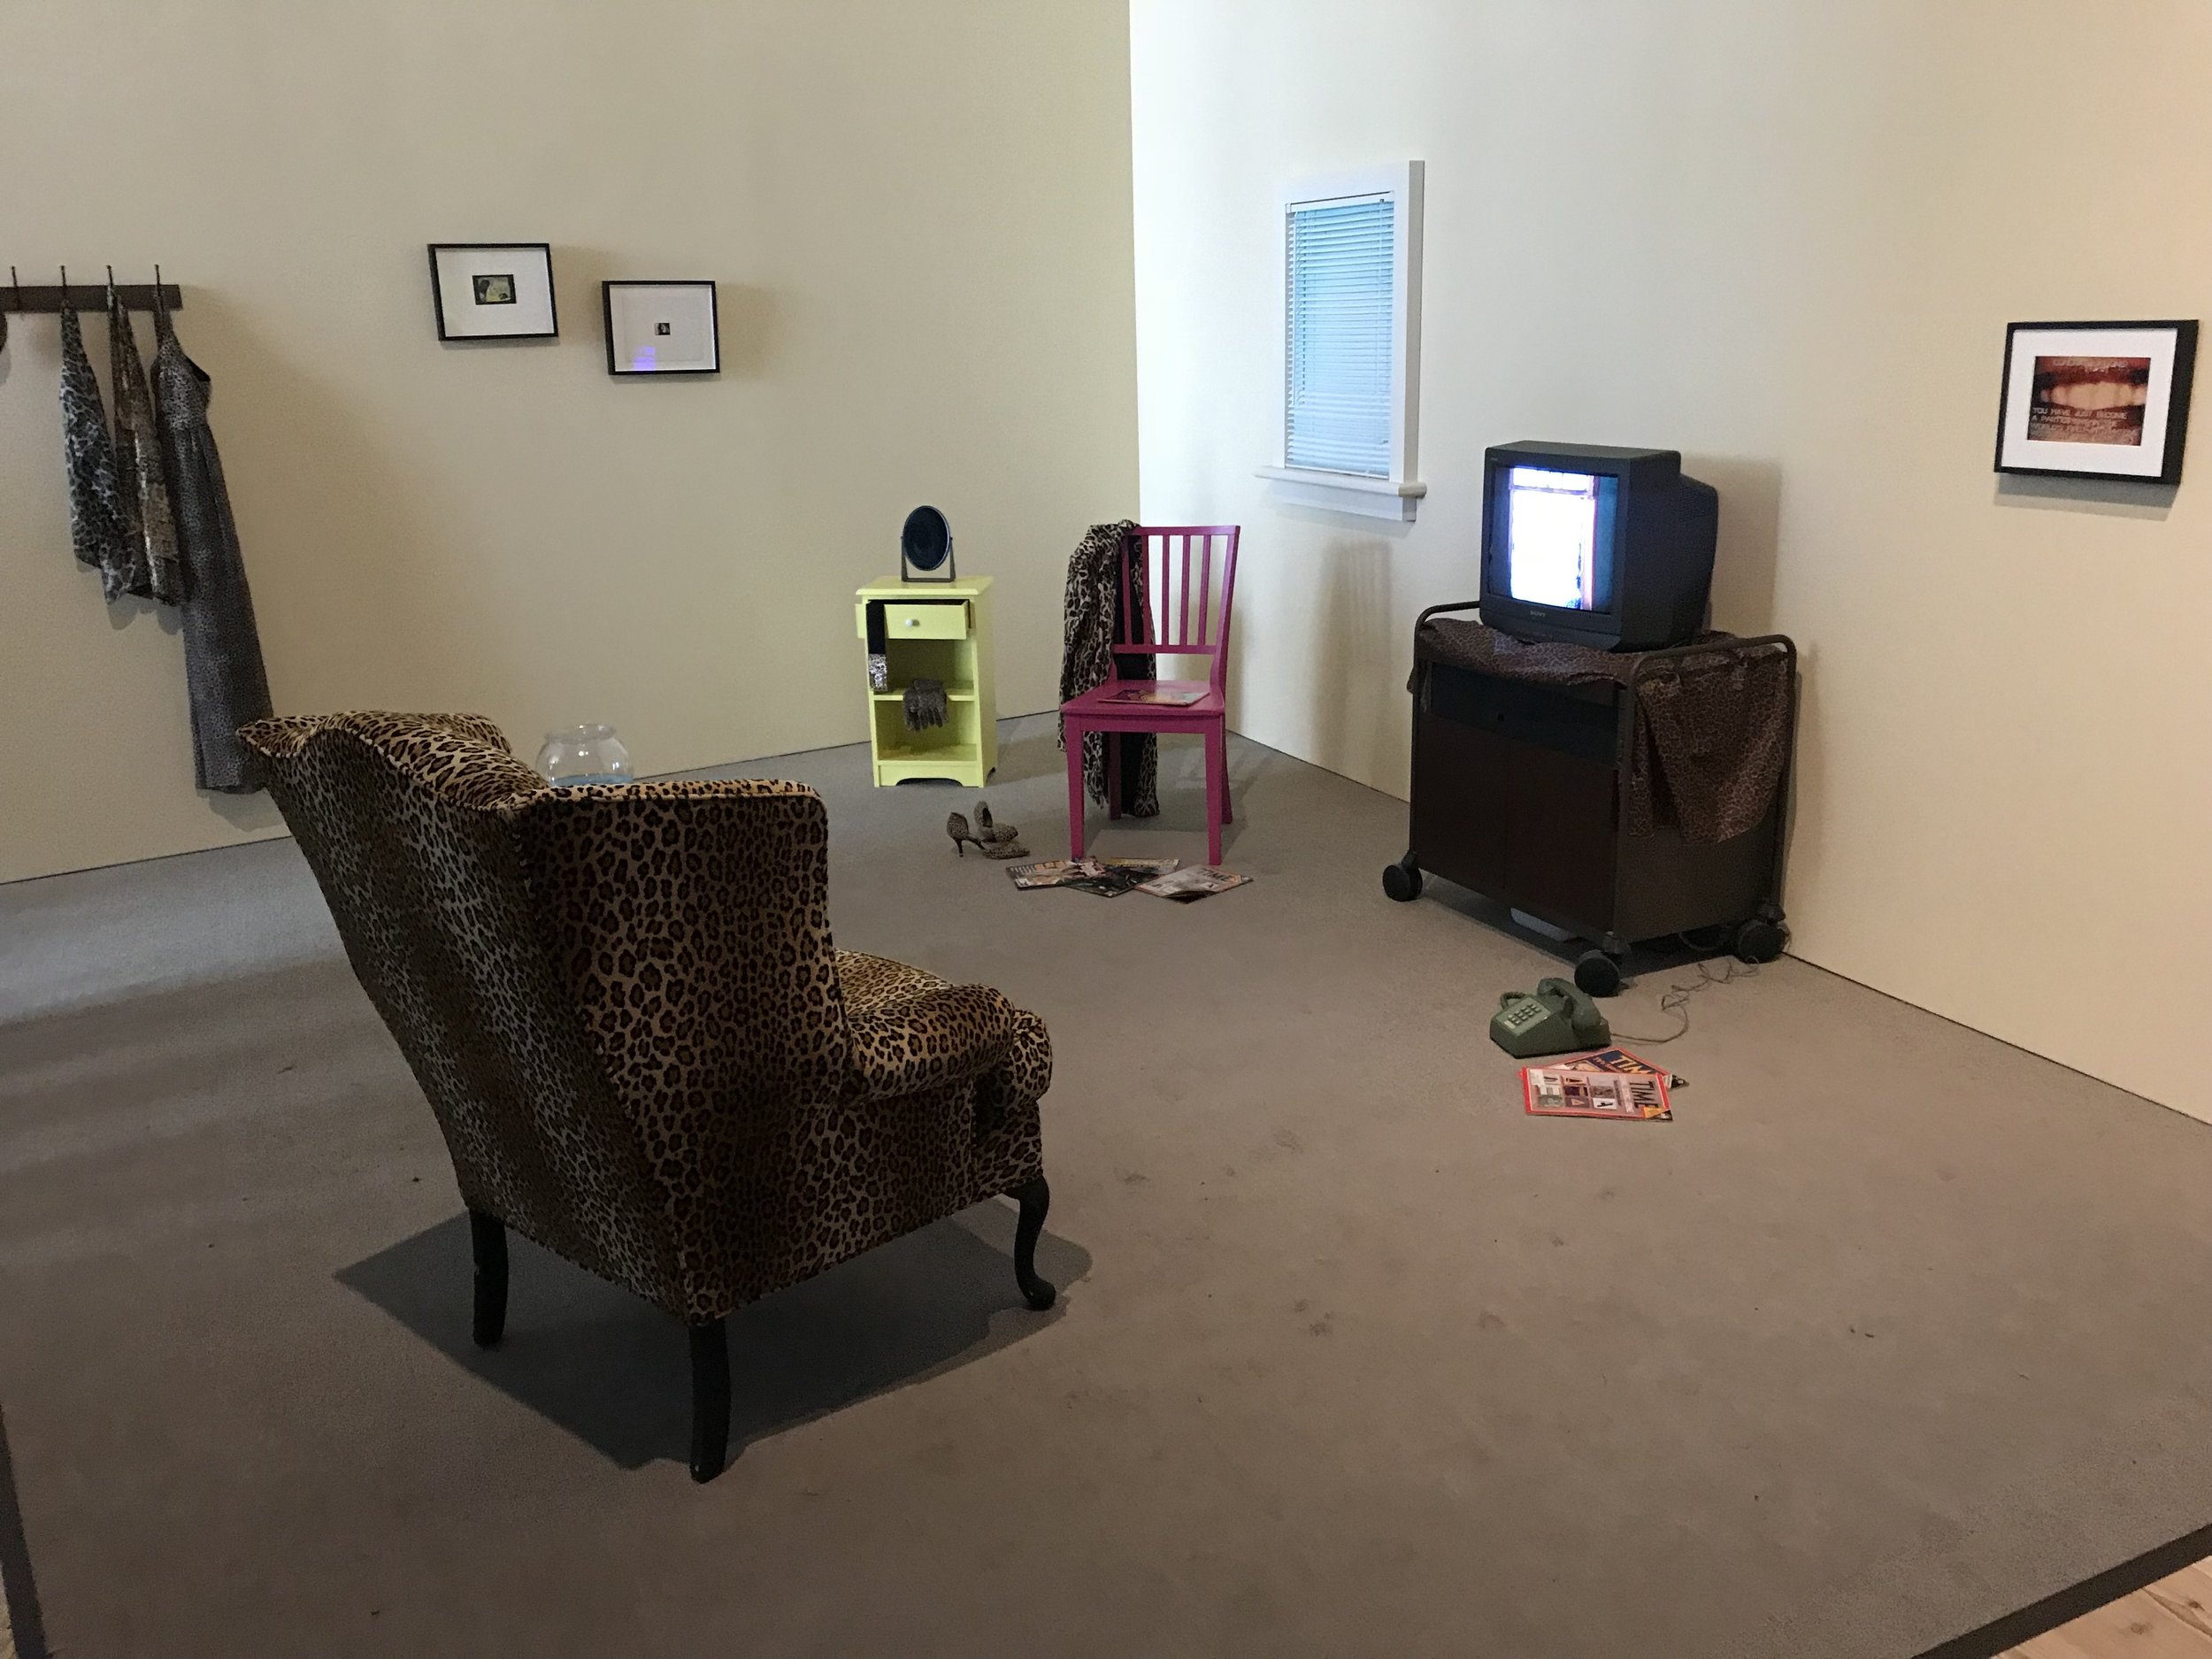 Couldn't tell you anything about this piece other than a quick story on how the artist replicated an exact copy of the living room seen from the show displayed on the television set. Stories matter.